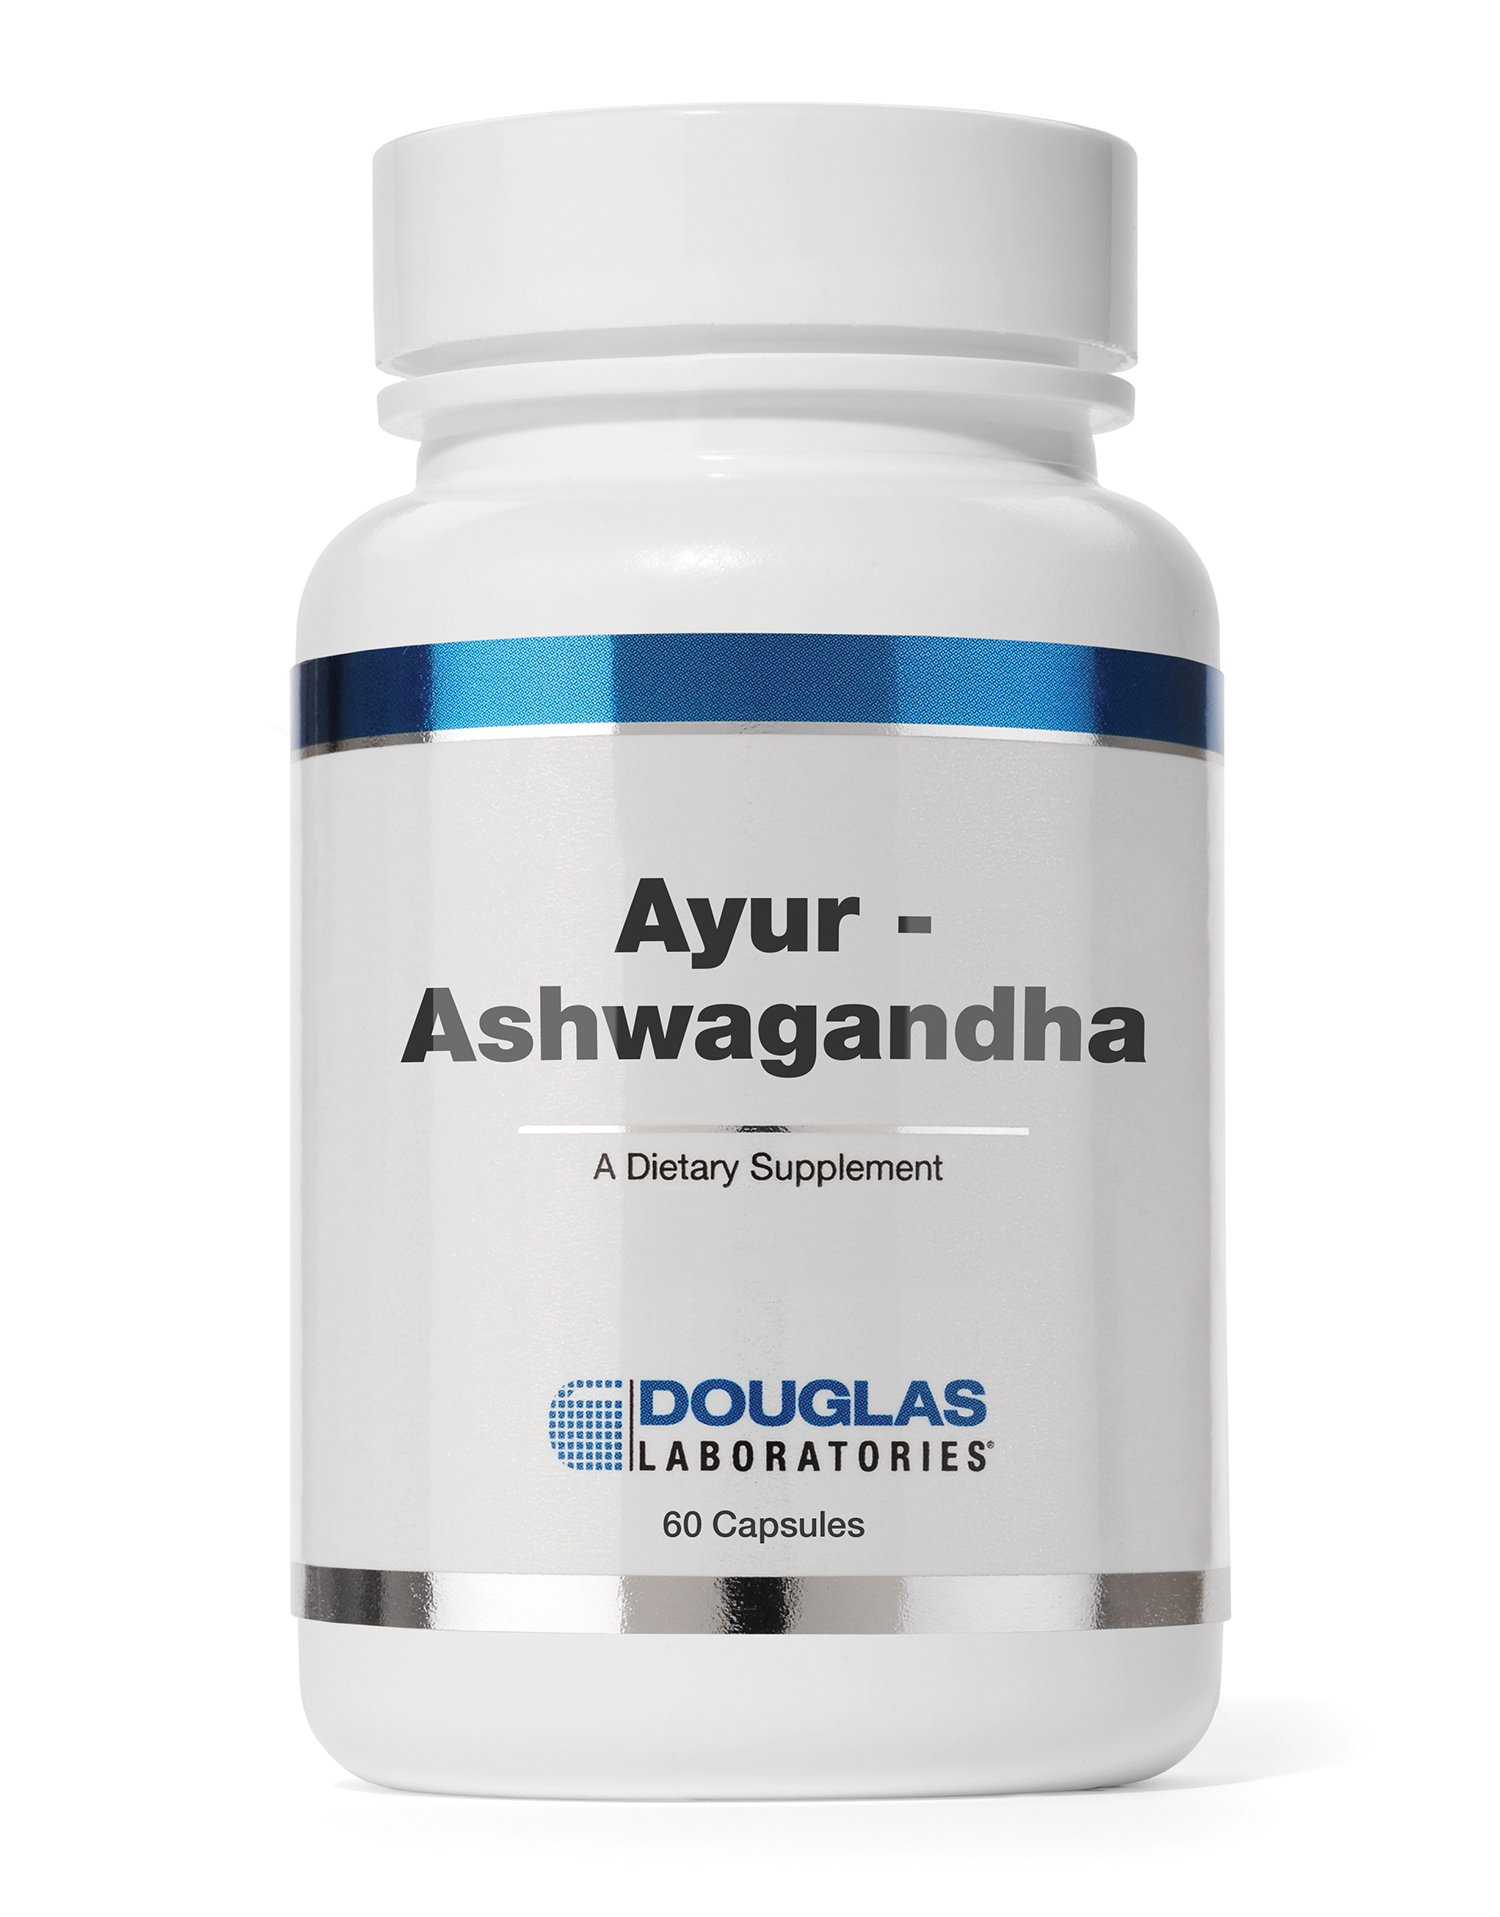 Douglas Laboratories Ayur-Ashwaganda (Indian Ginseng) - Ayurvedic Herb to Support Energy Production, Mental and Physical Performance* - 60 Capsules